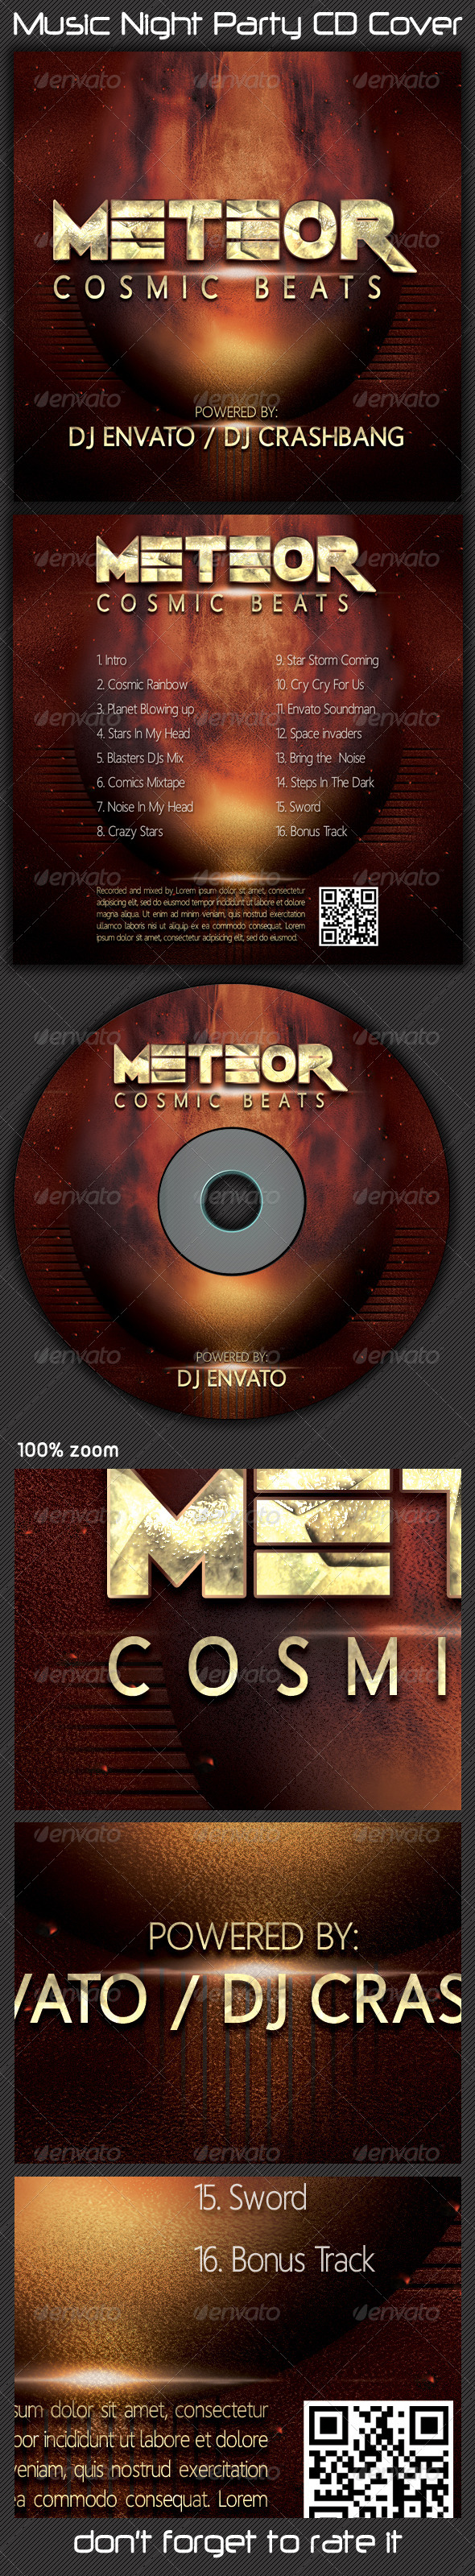 GraphicRiver Music Night Party CD Cover 5560808